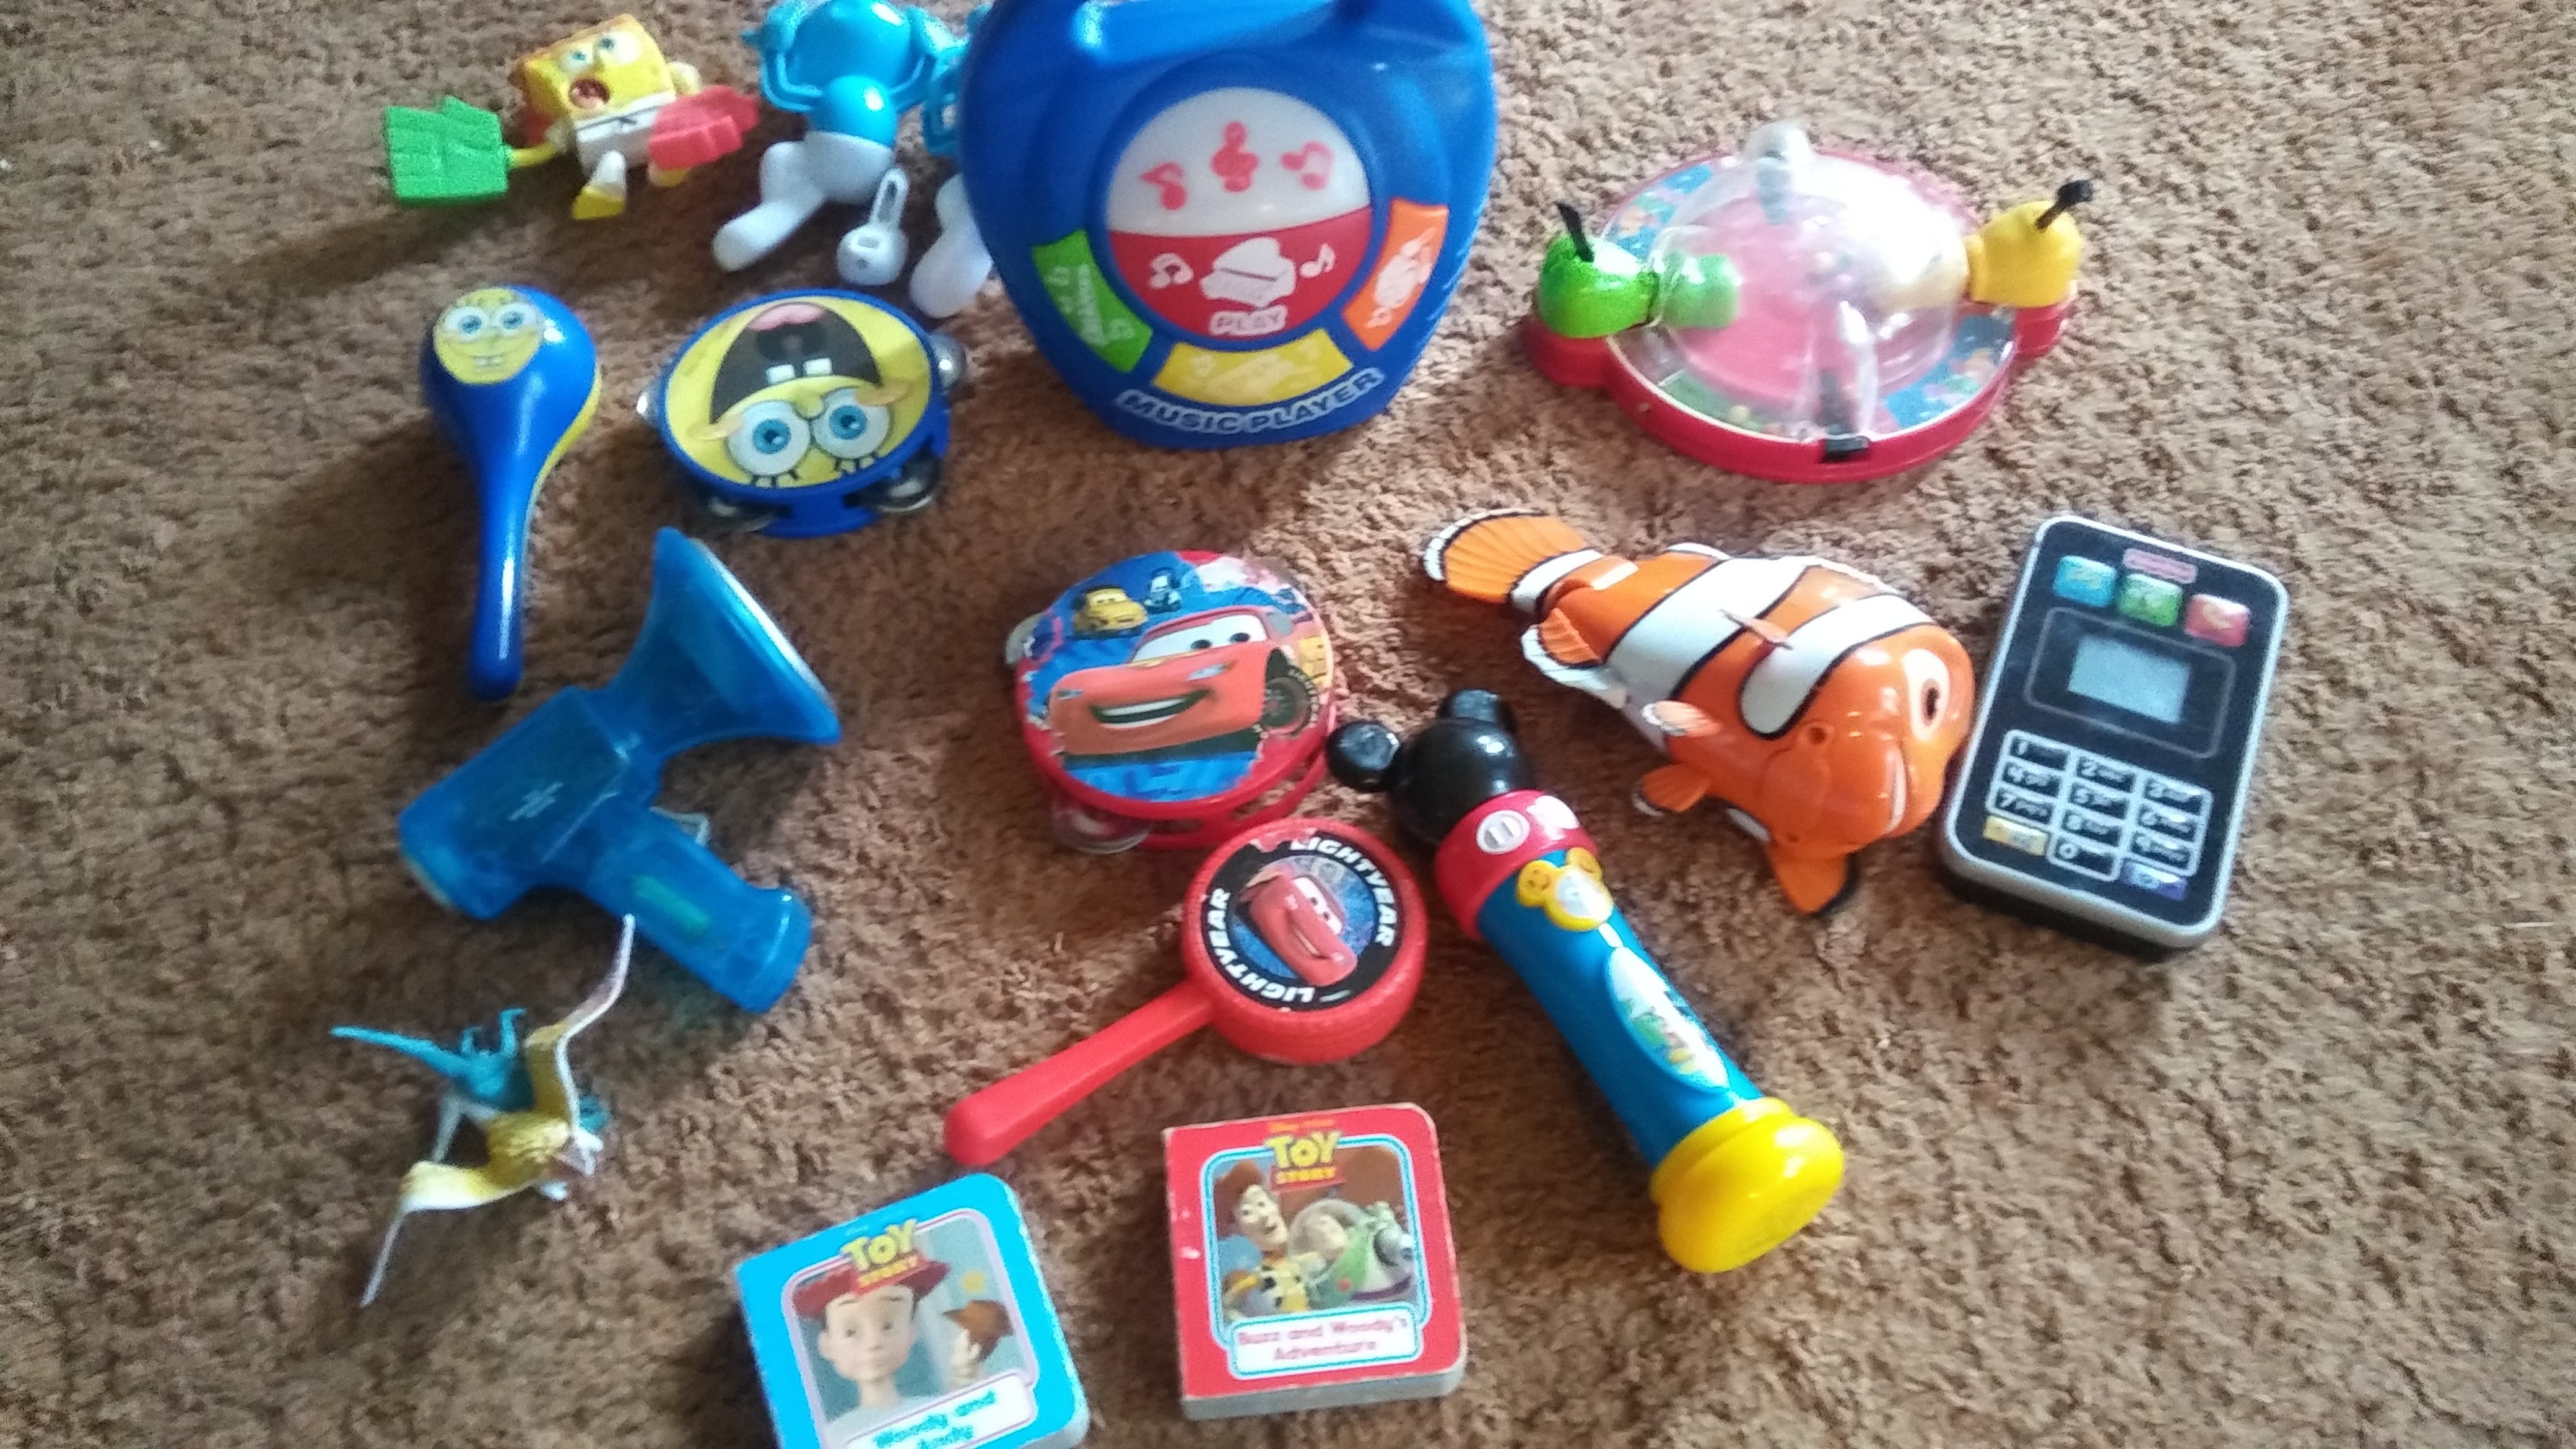 Toy lot $2 for all! Need gone asap ( meeting Sun, mon, tue, 16-18th than donating)